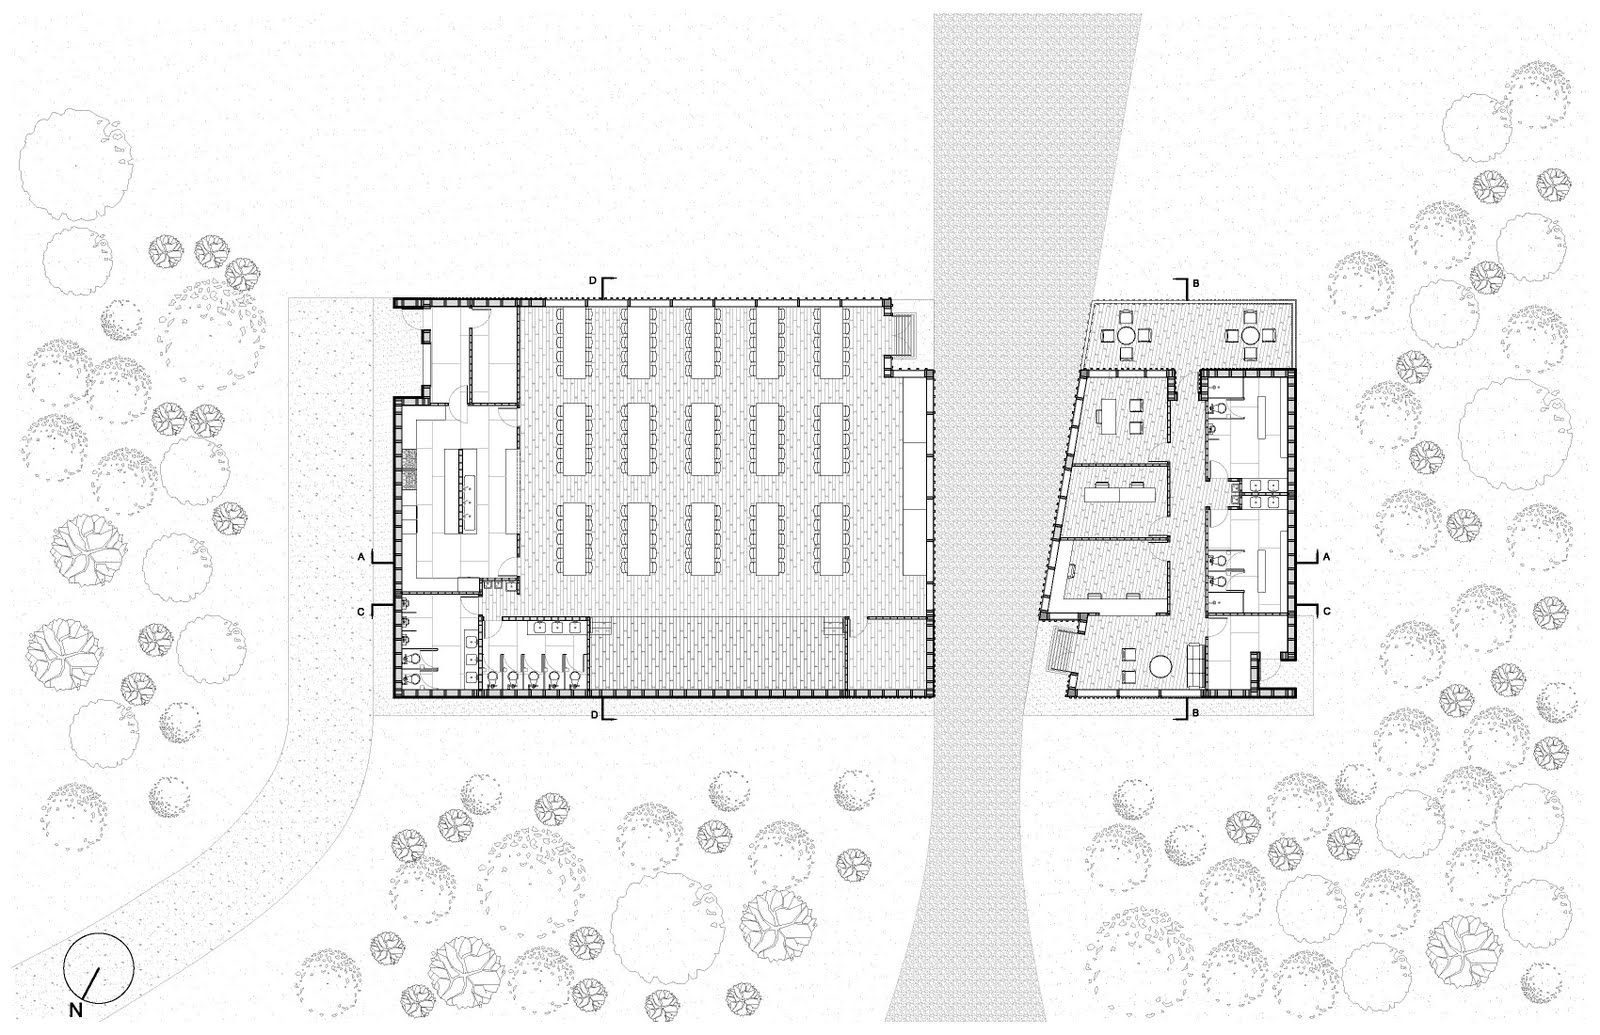 Camp Craft Gathering Pavilion Plans Sections Elevations